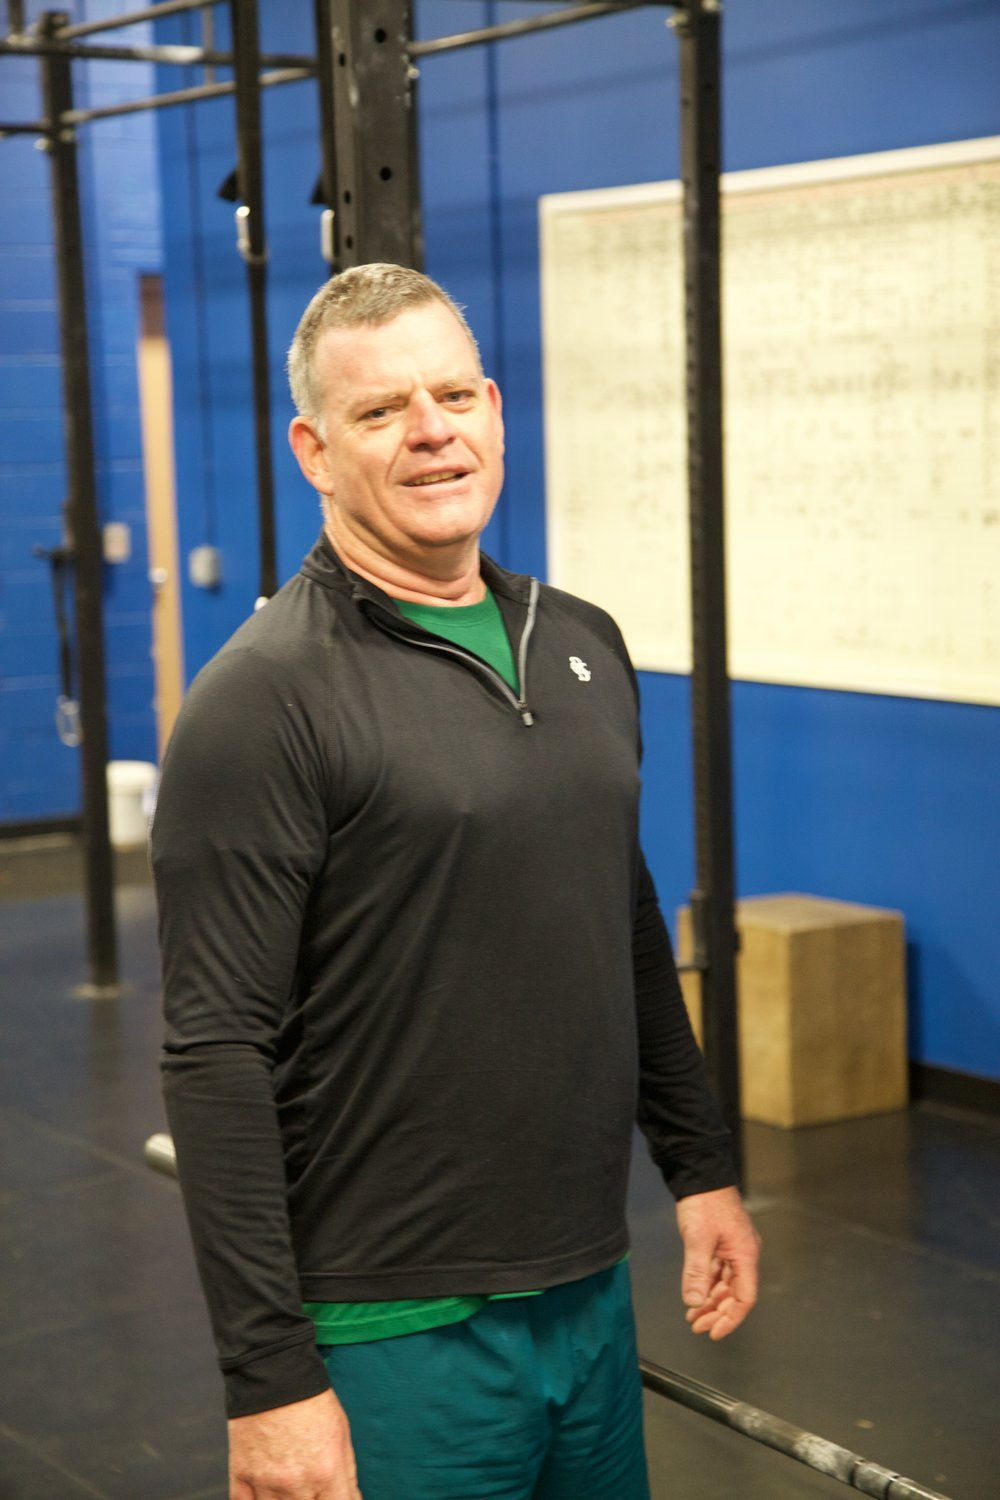 Sean Shallis at CrossFit Annex